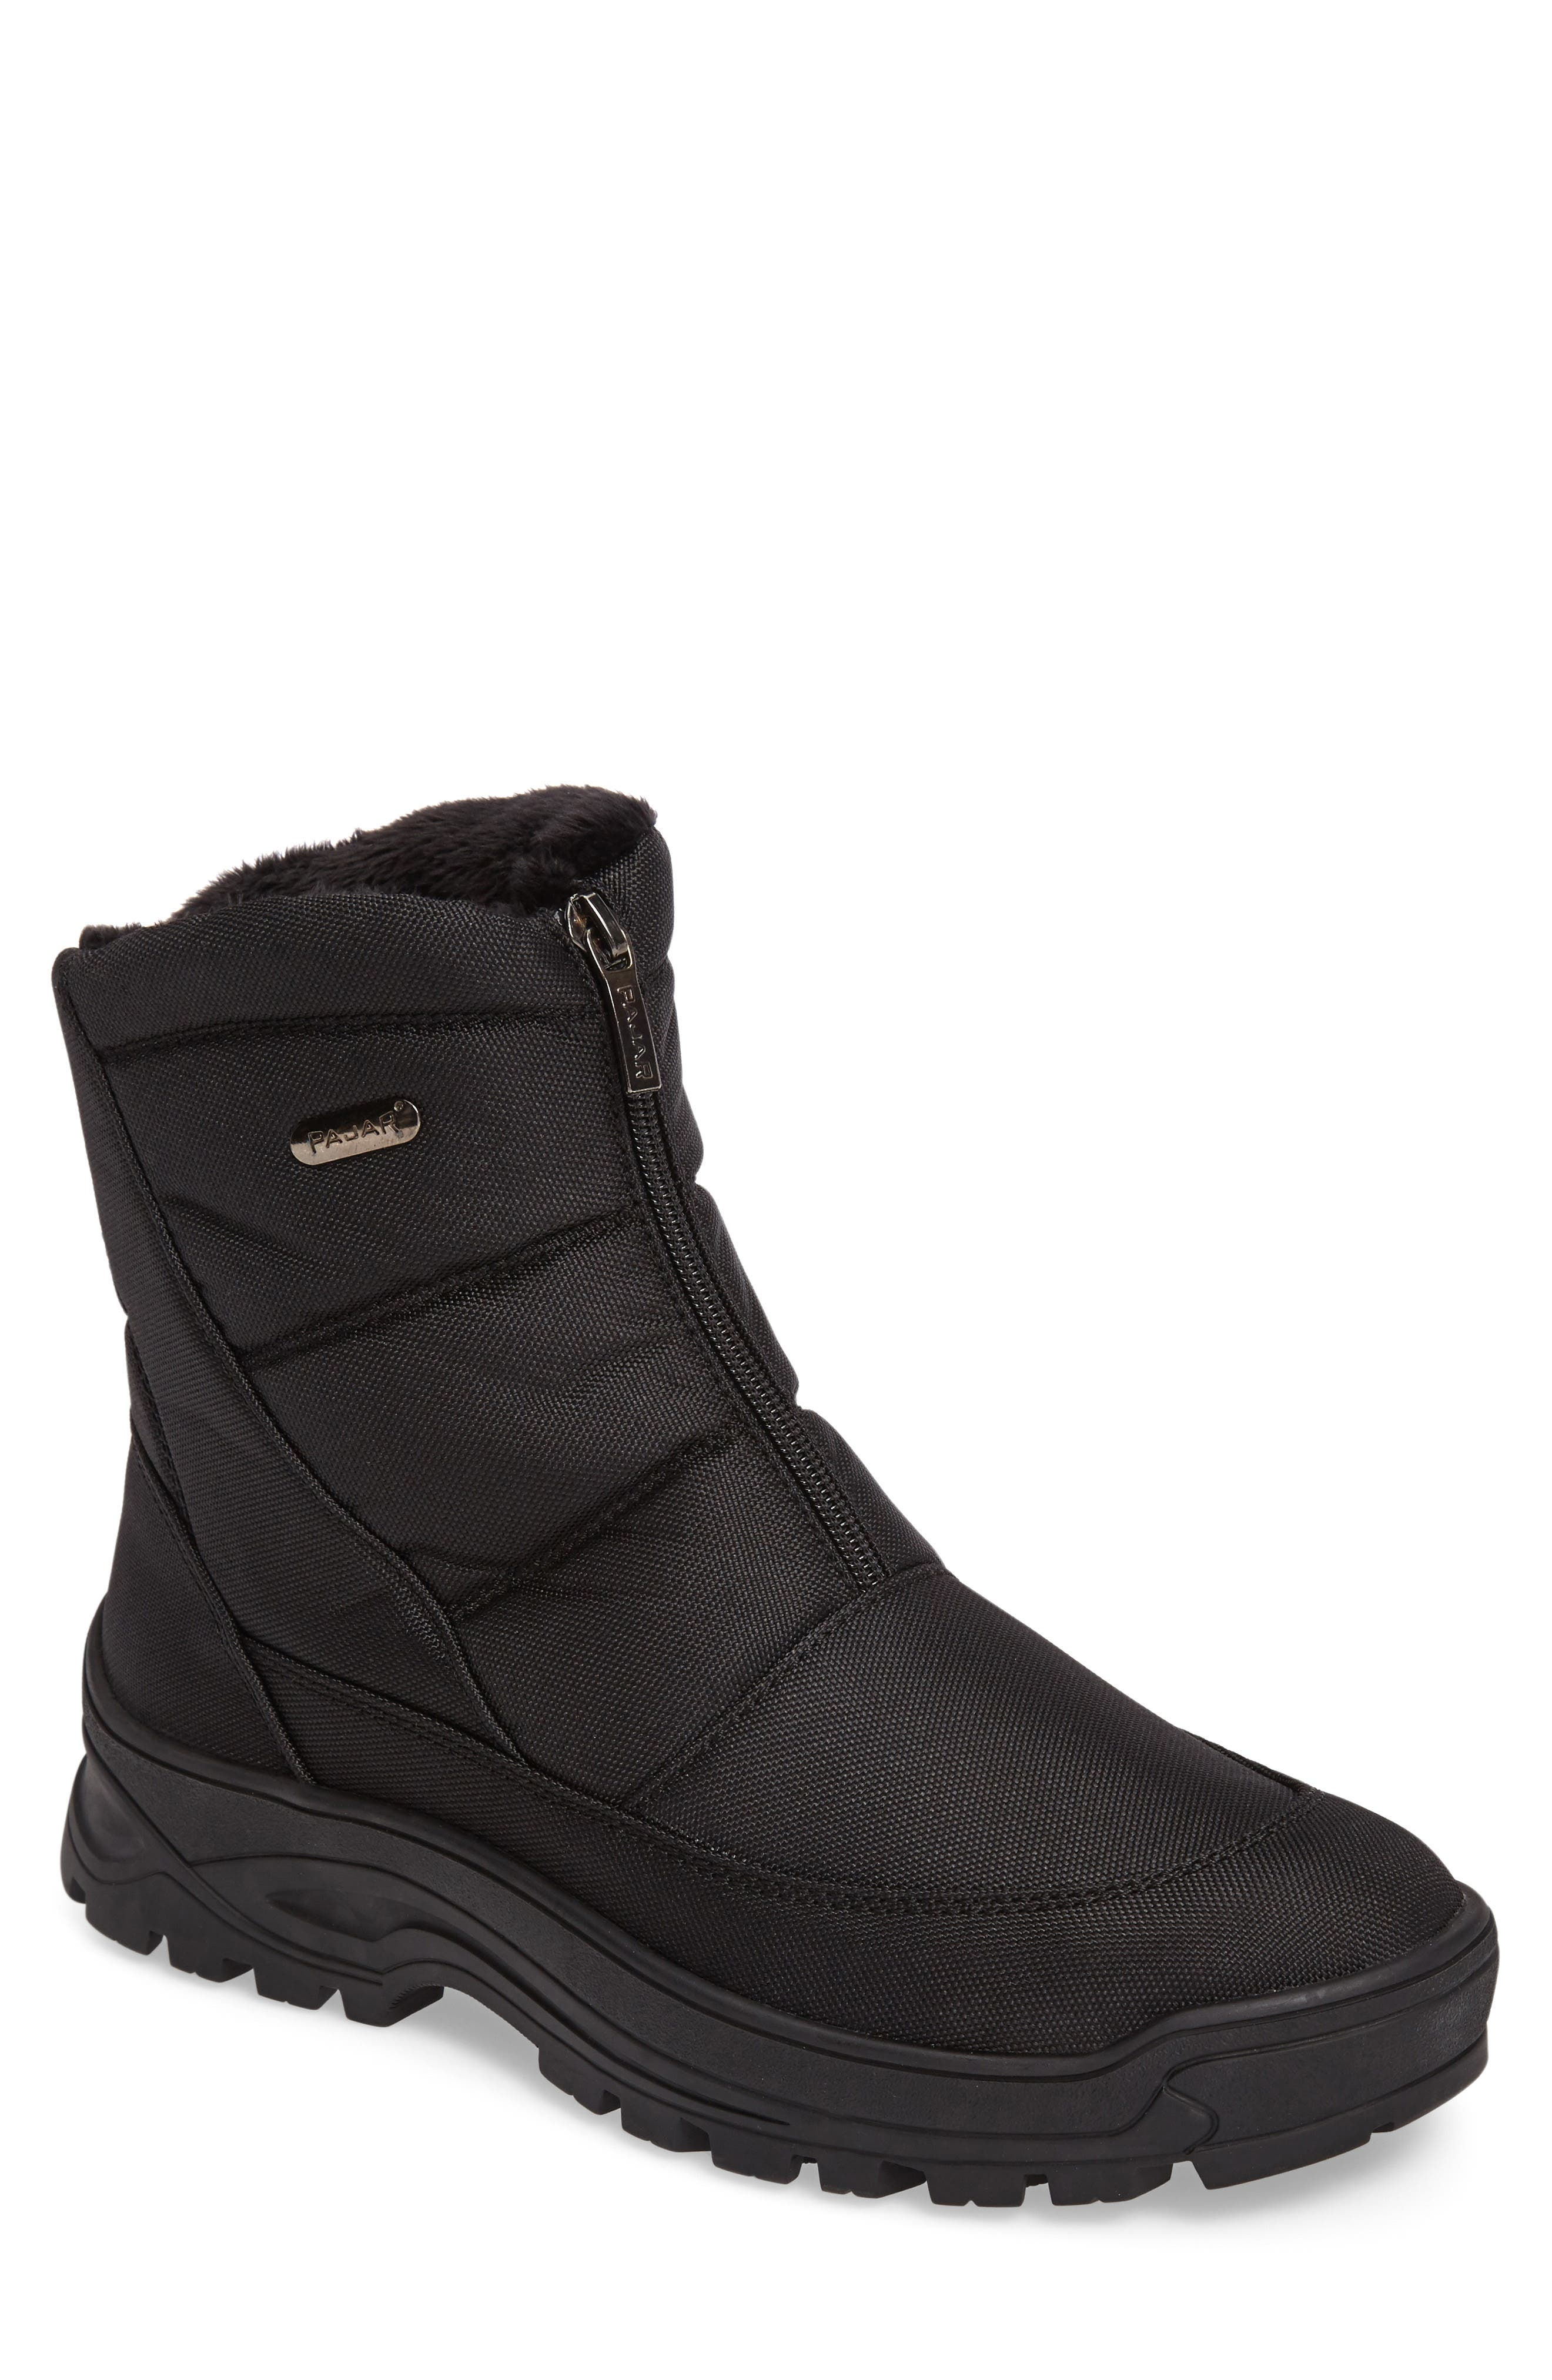 Icepack Boot with Faux Fur Lining,                         Main,                         color,